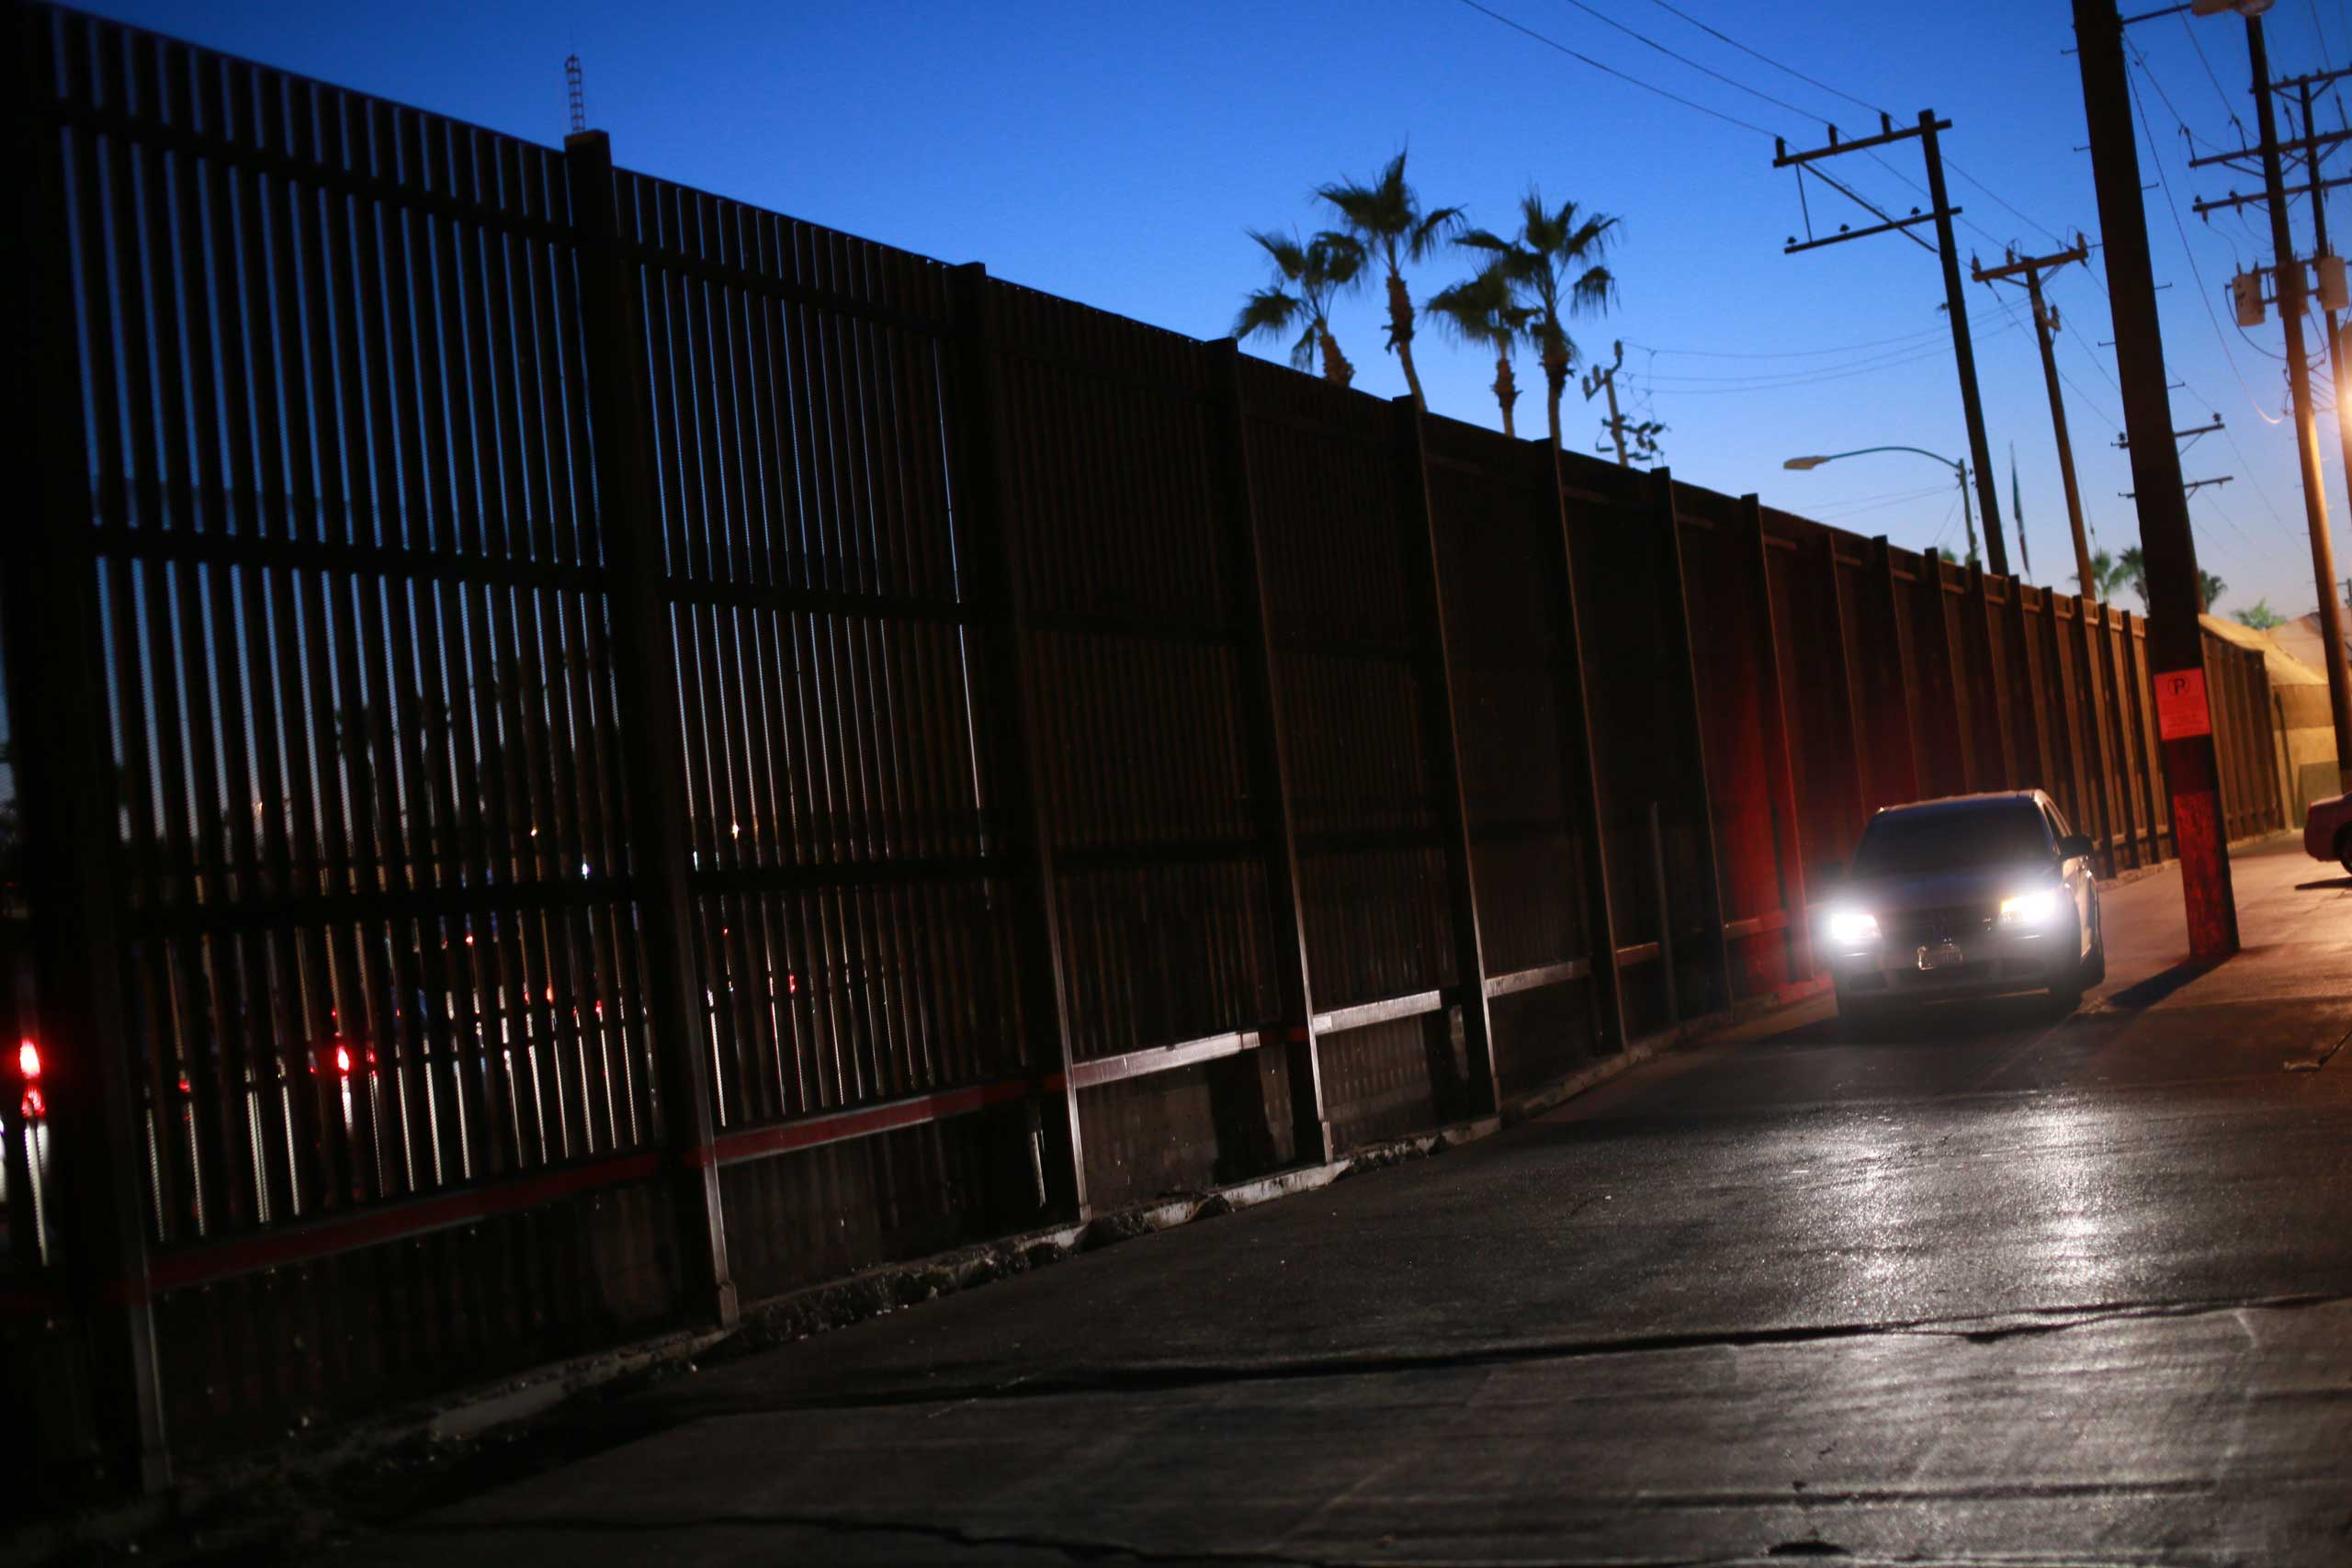 A car drives along the U.S. - Mexico border wall in Calexico, Calif. on Nov. 19, 2014.